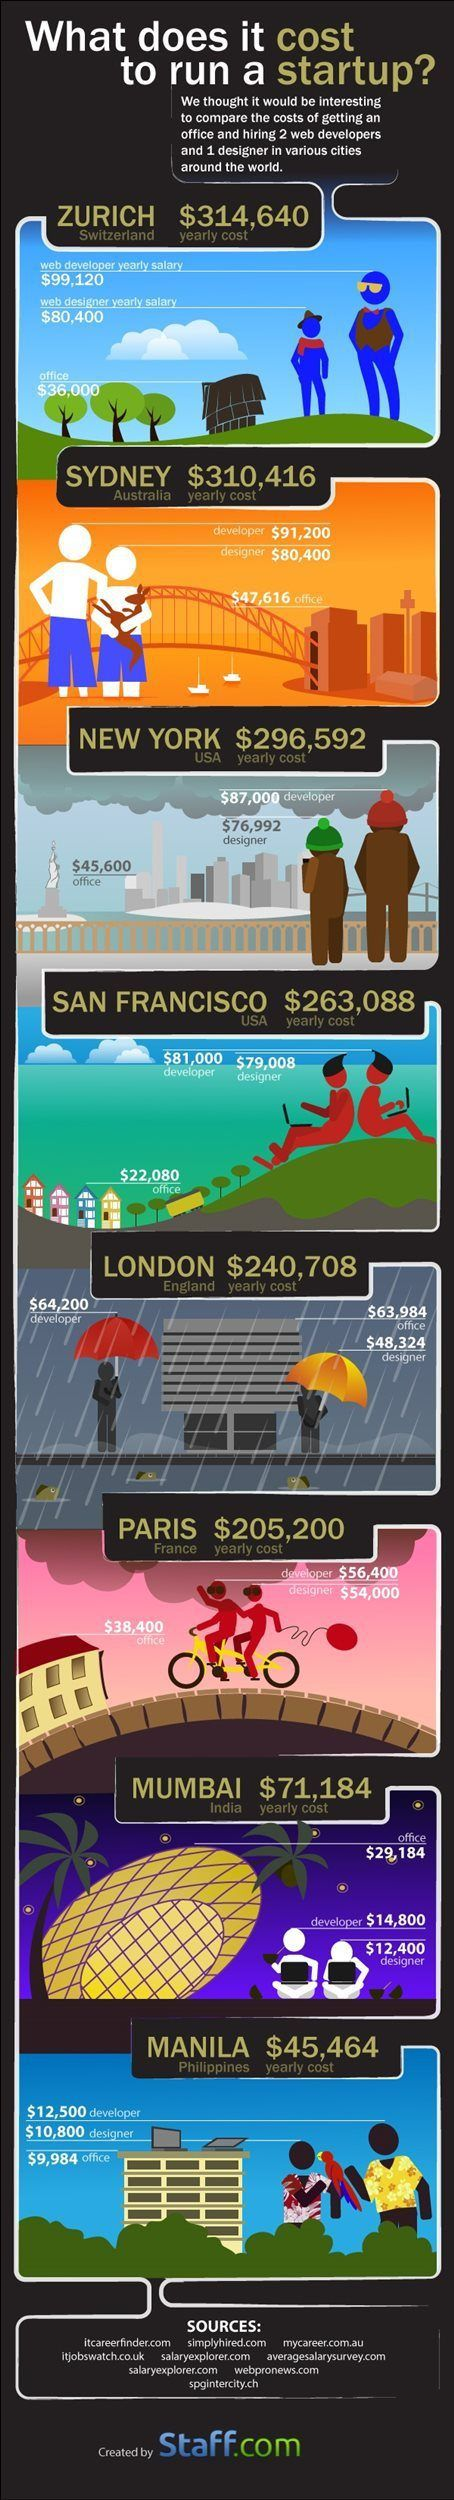 What does it cost to run a startup? #infografia #infographic #entrpreneurship